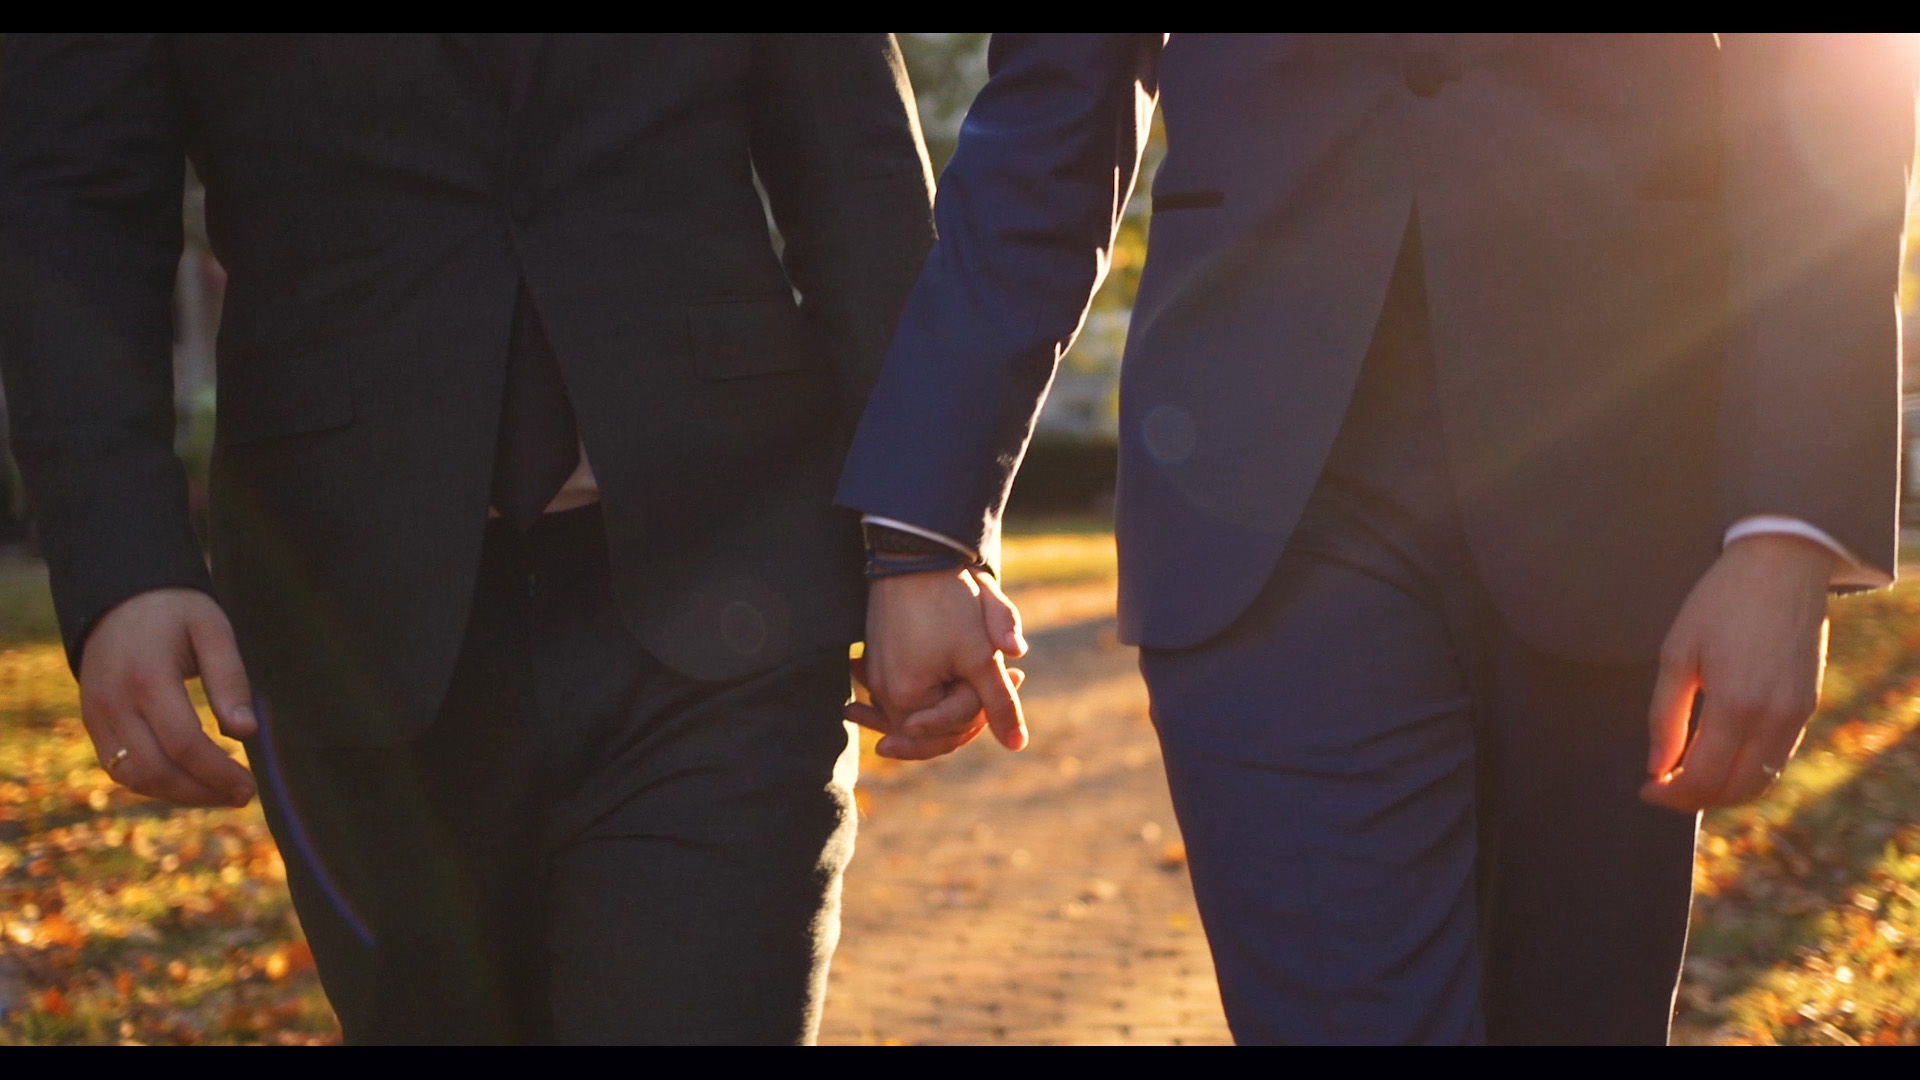 Sunset same-sex wedding video in Lexington, Kentucky.